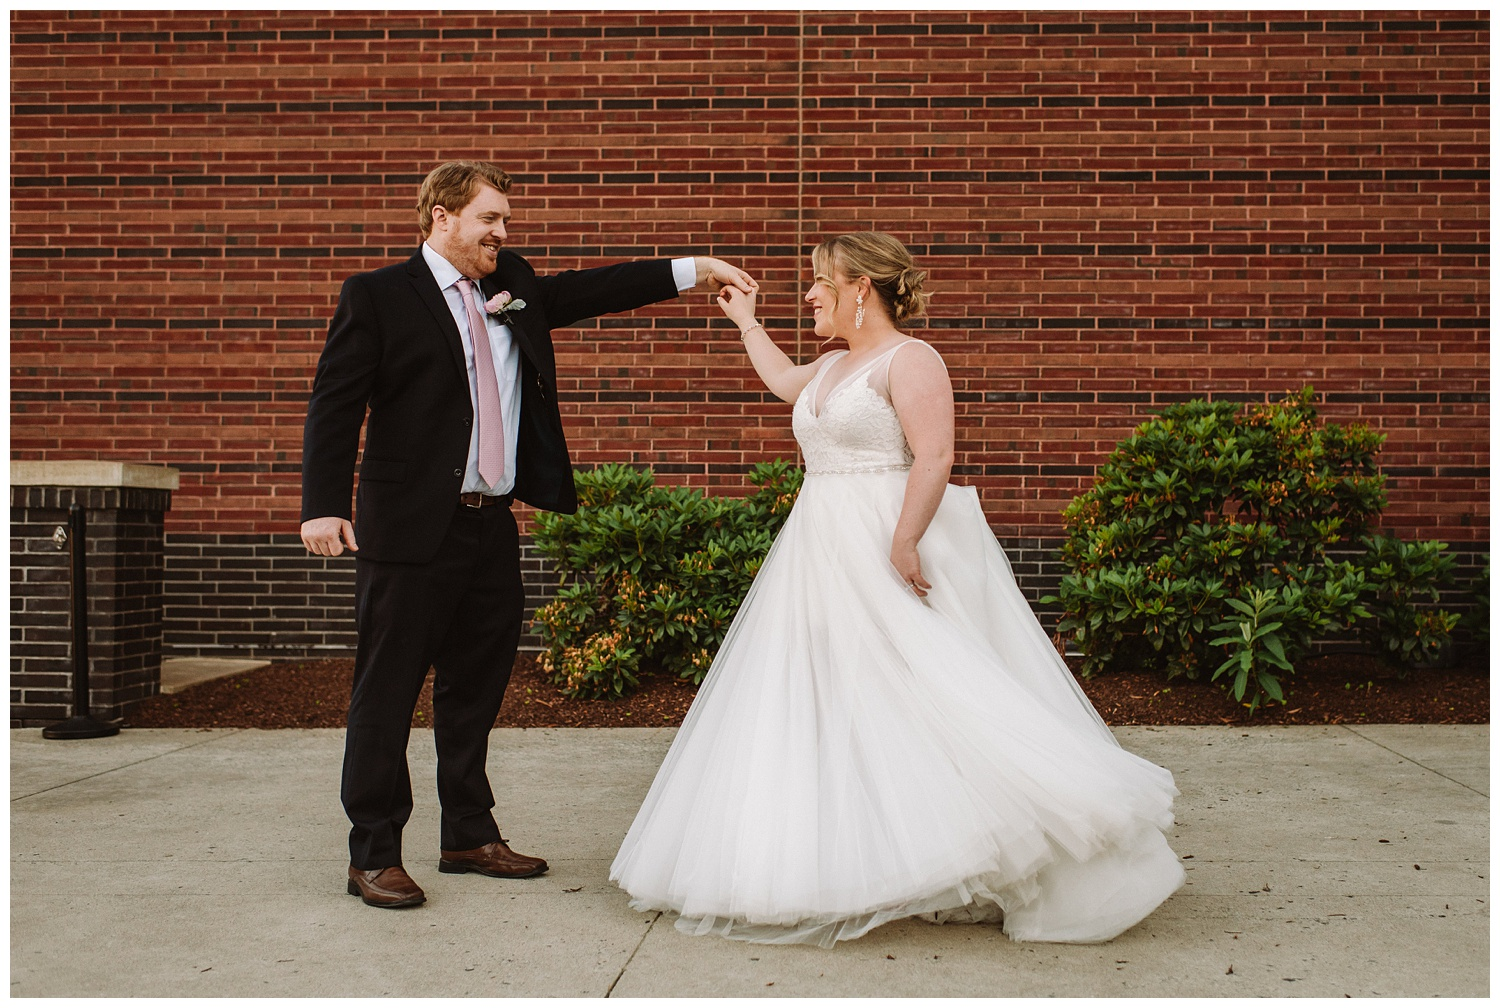 Renaissance Hotel Gillette Stadium Wedding Photographer98.jpg